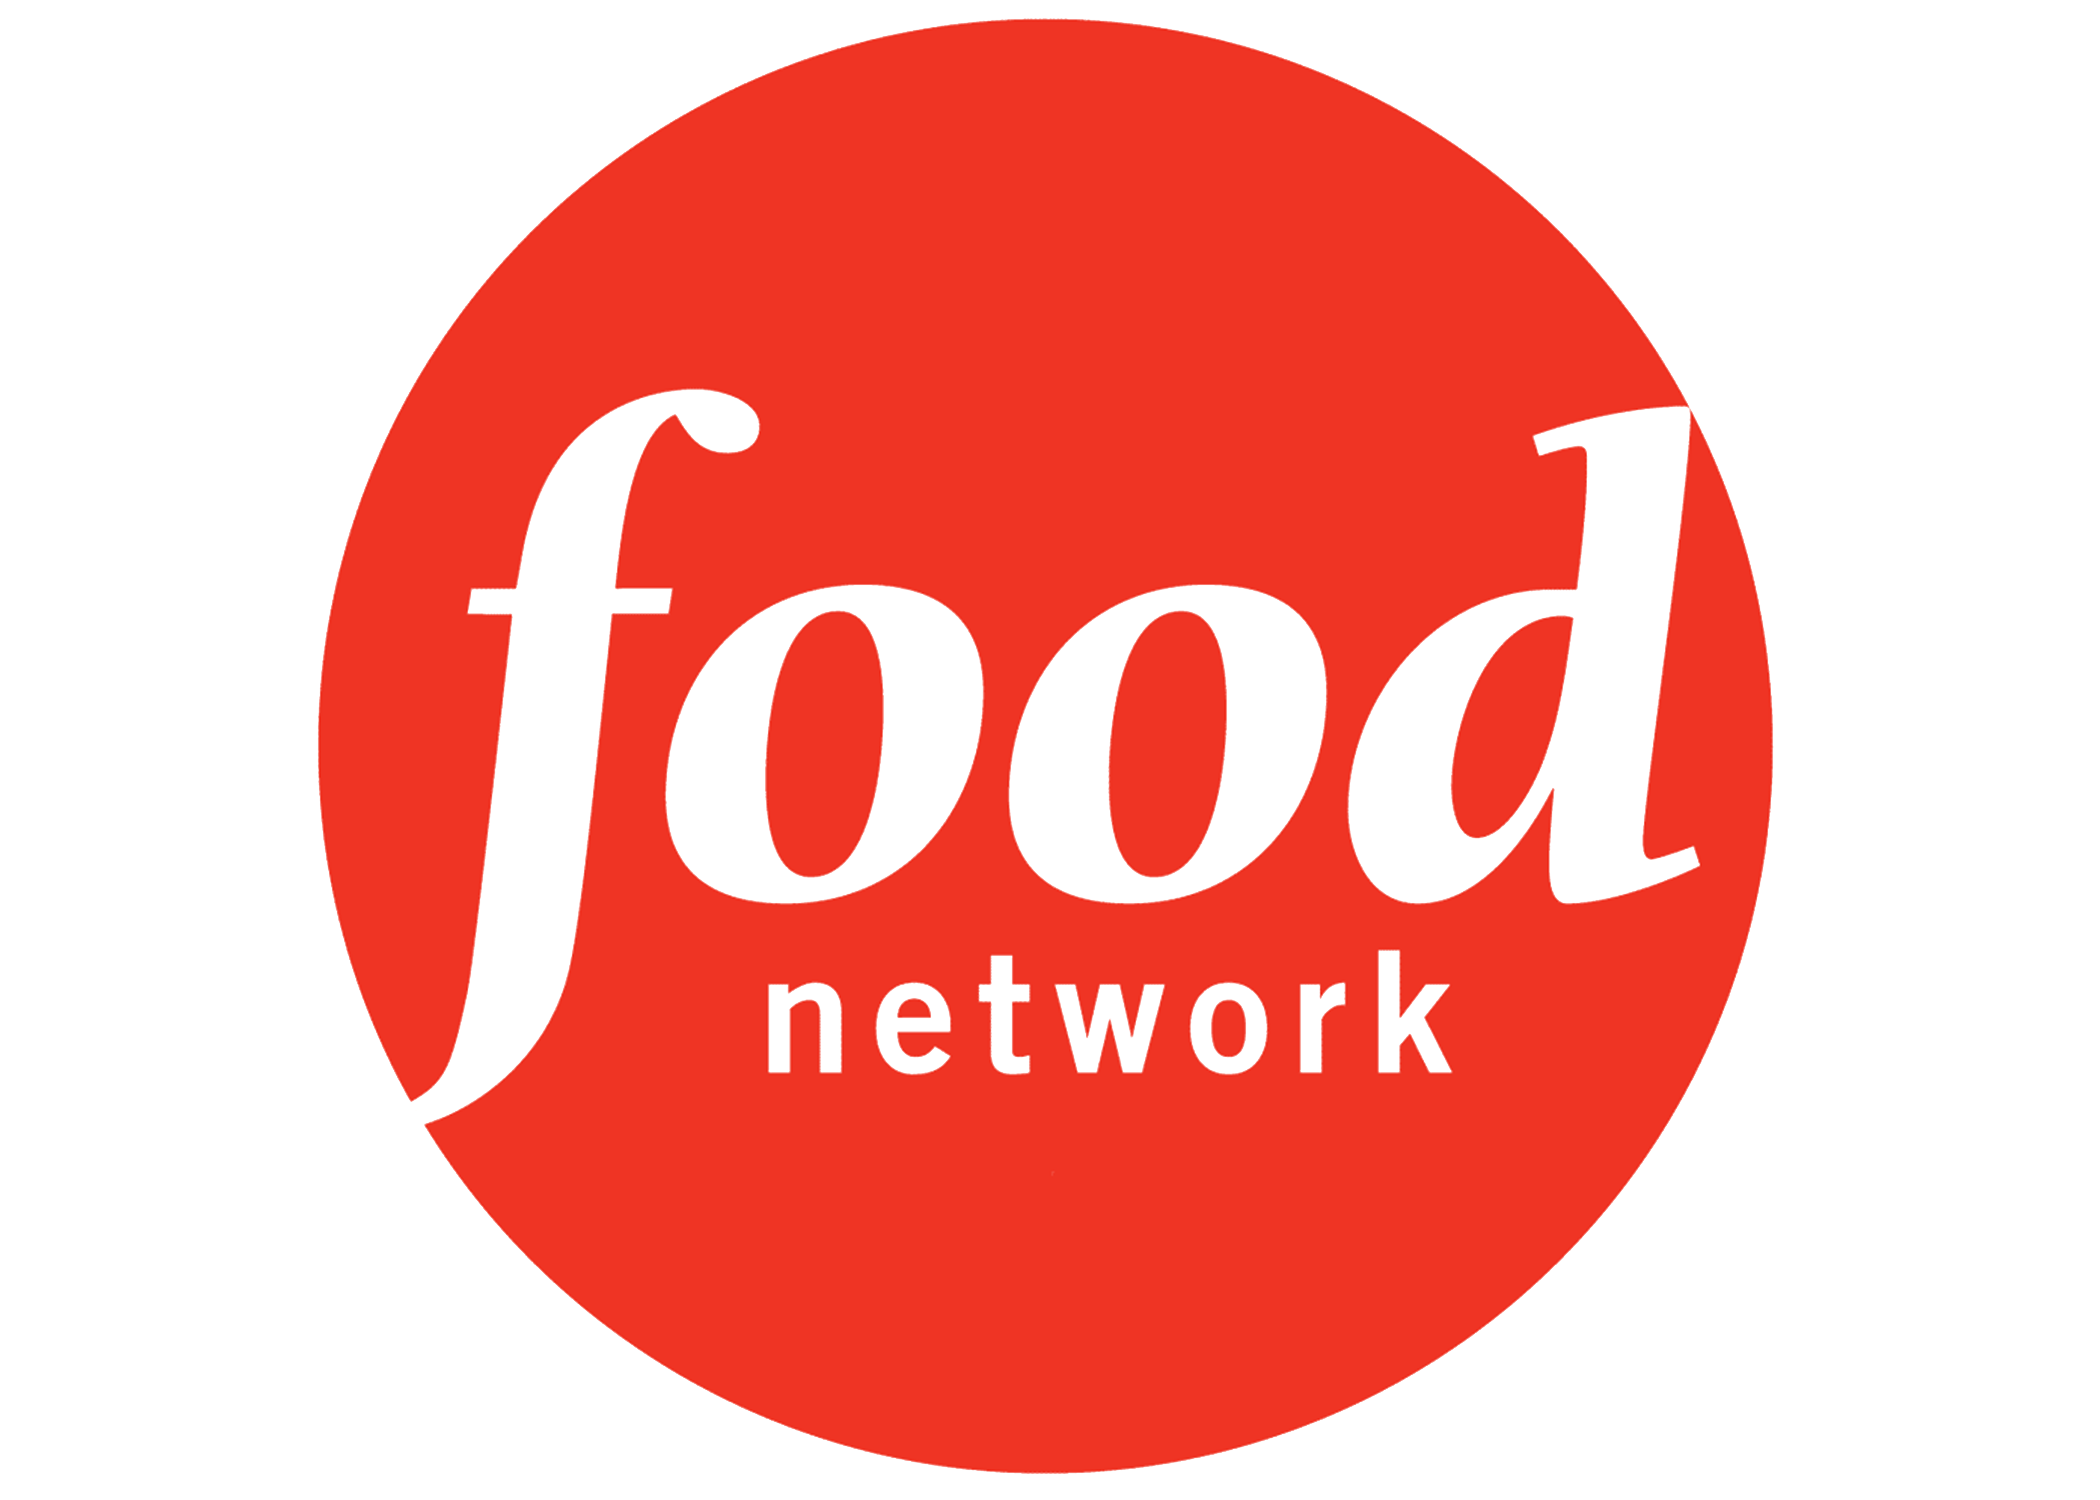 foodnetwork2.png